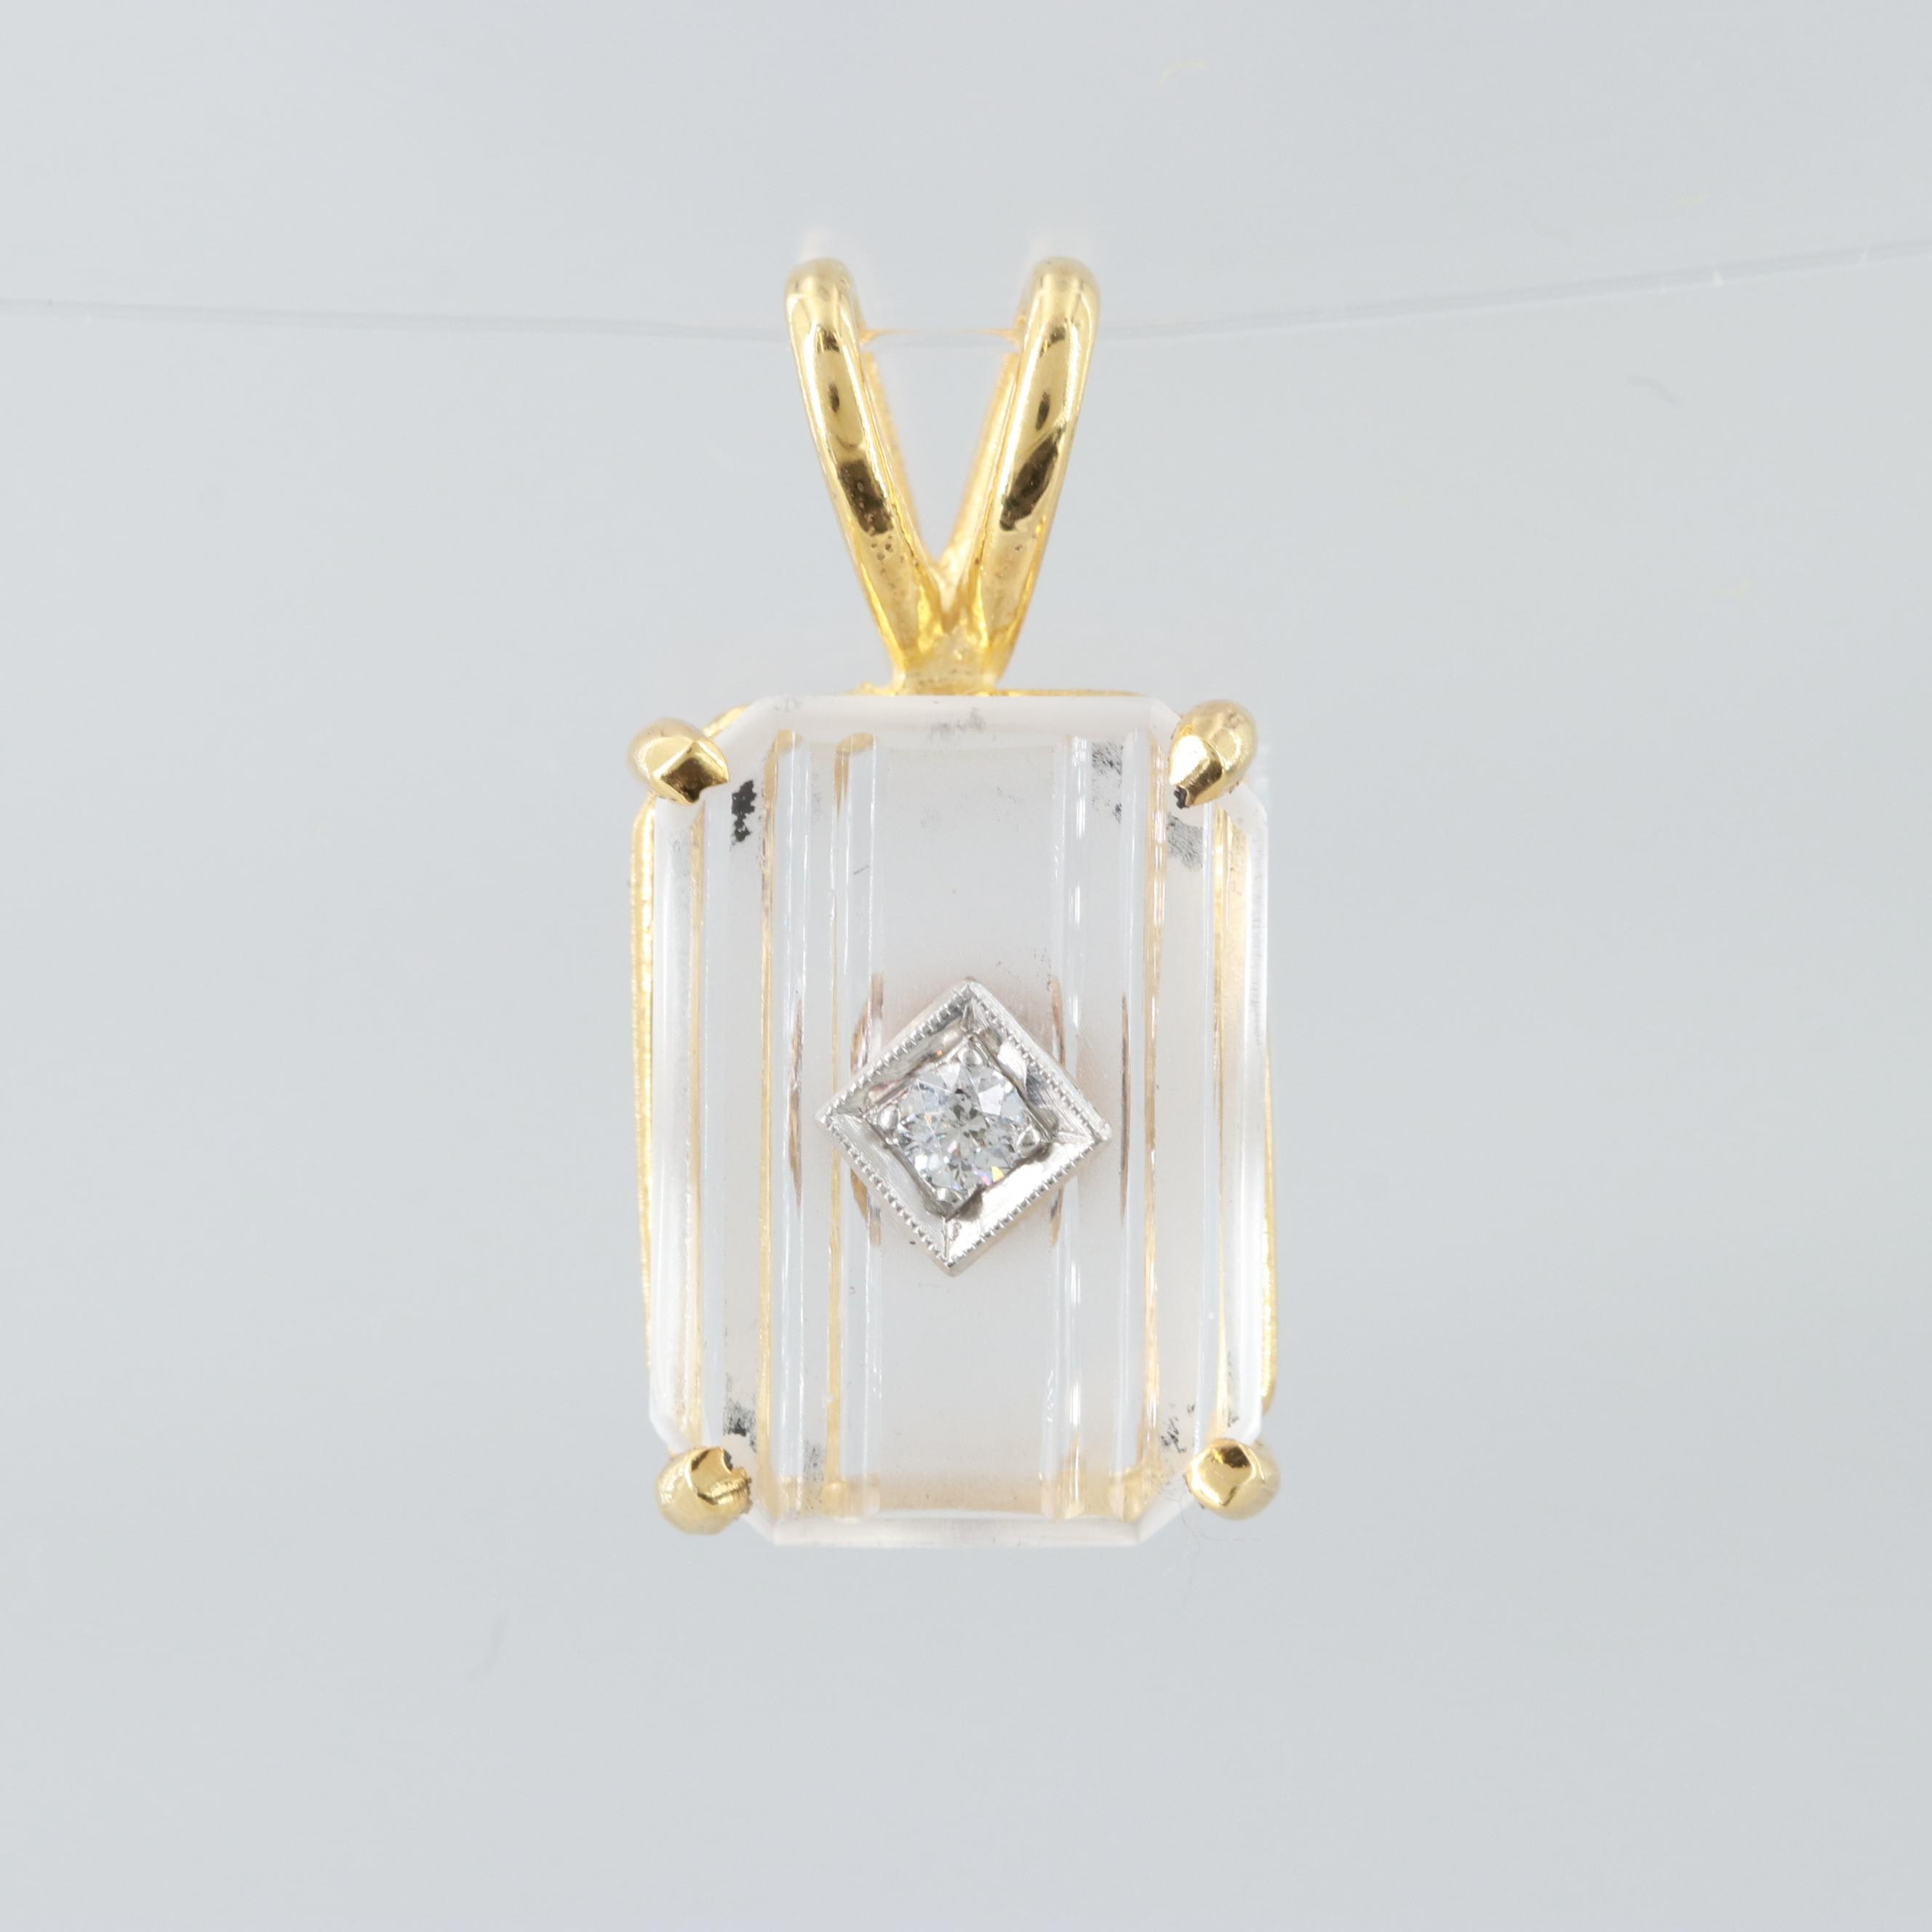 14K Yellow Gold Quartz Pendant with Platinum Diamond Center Accent